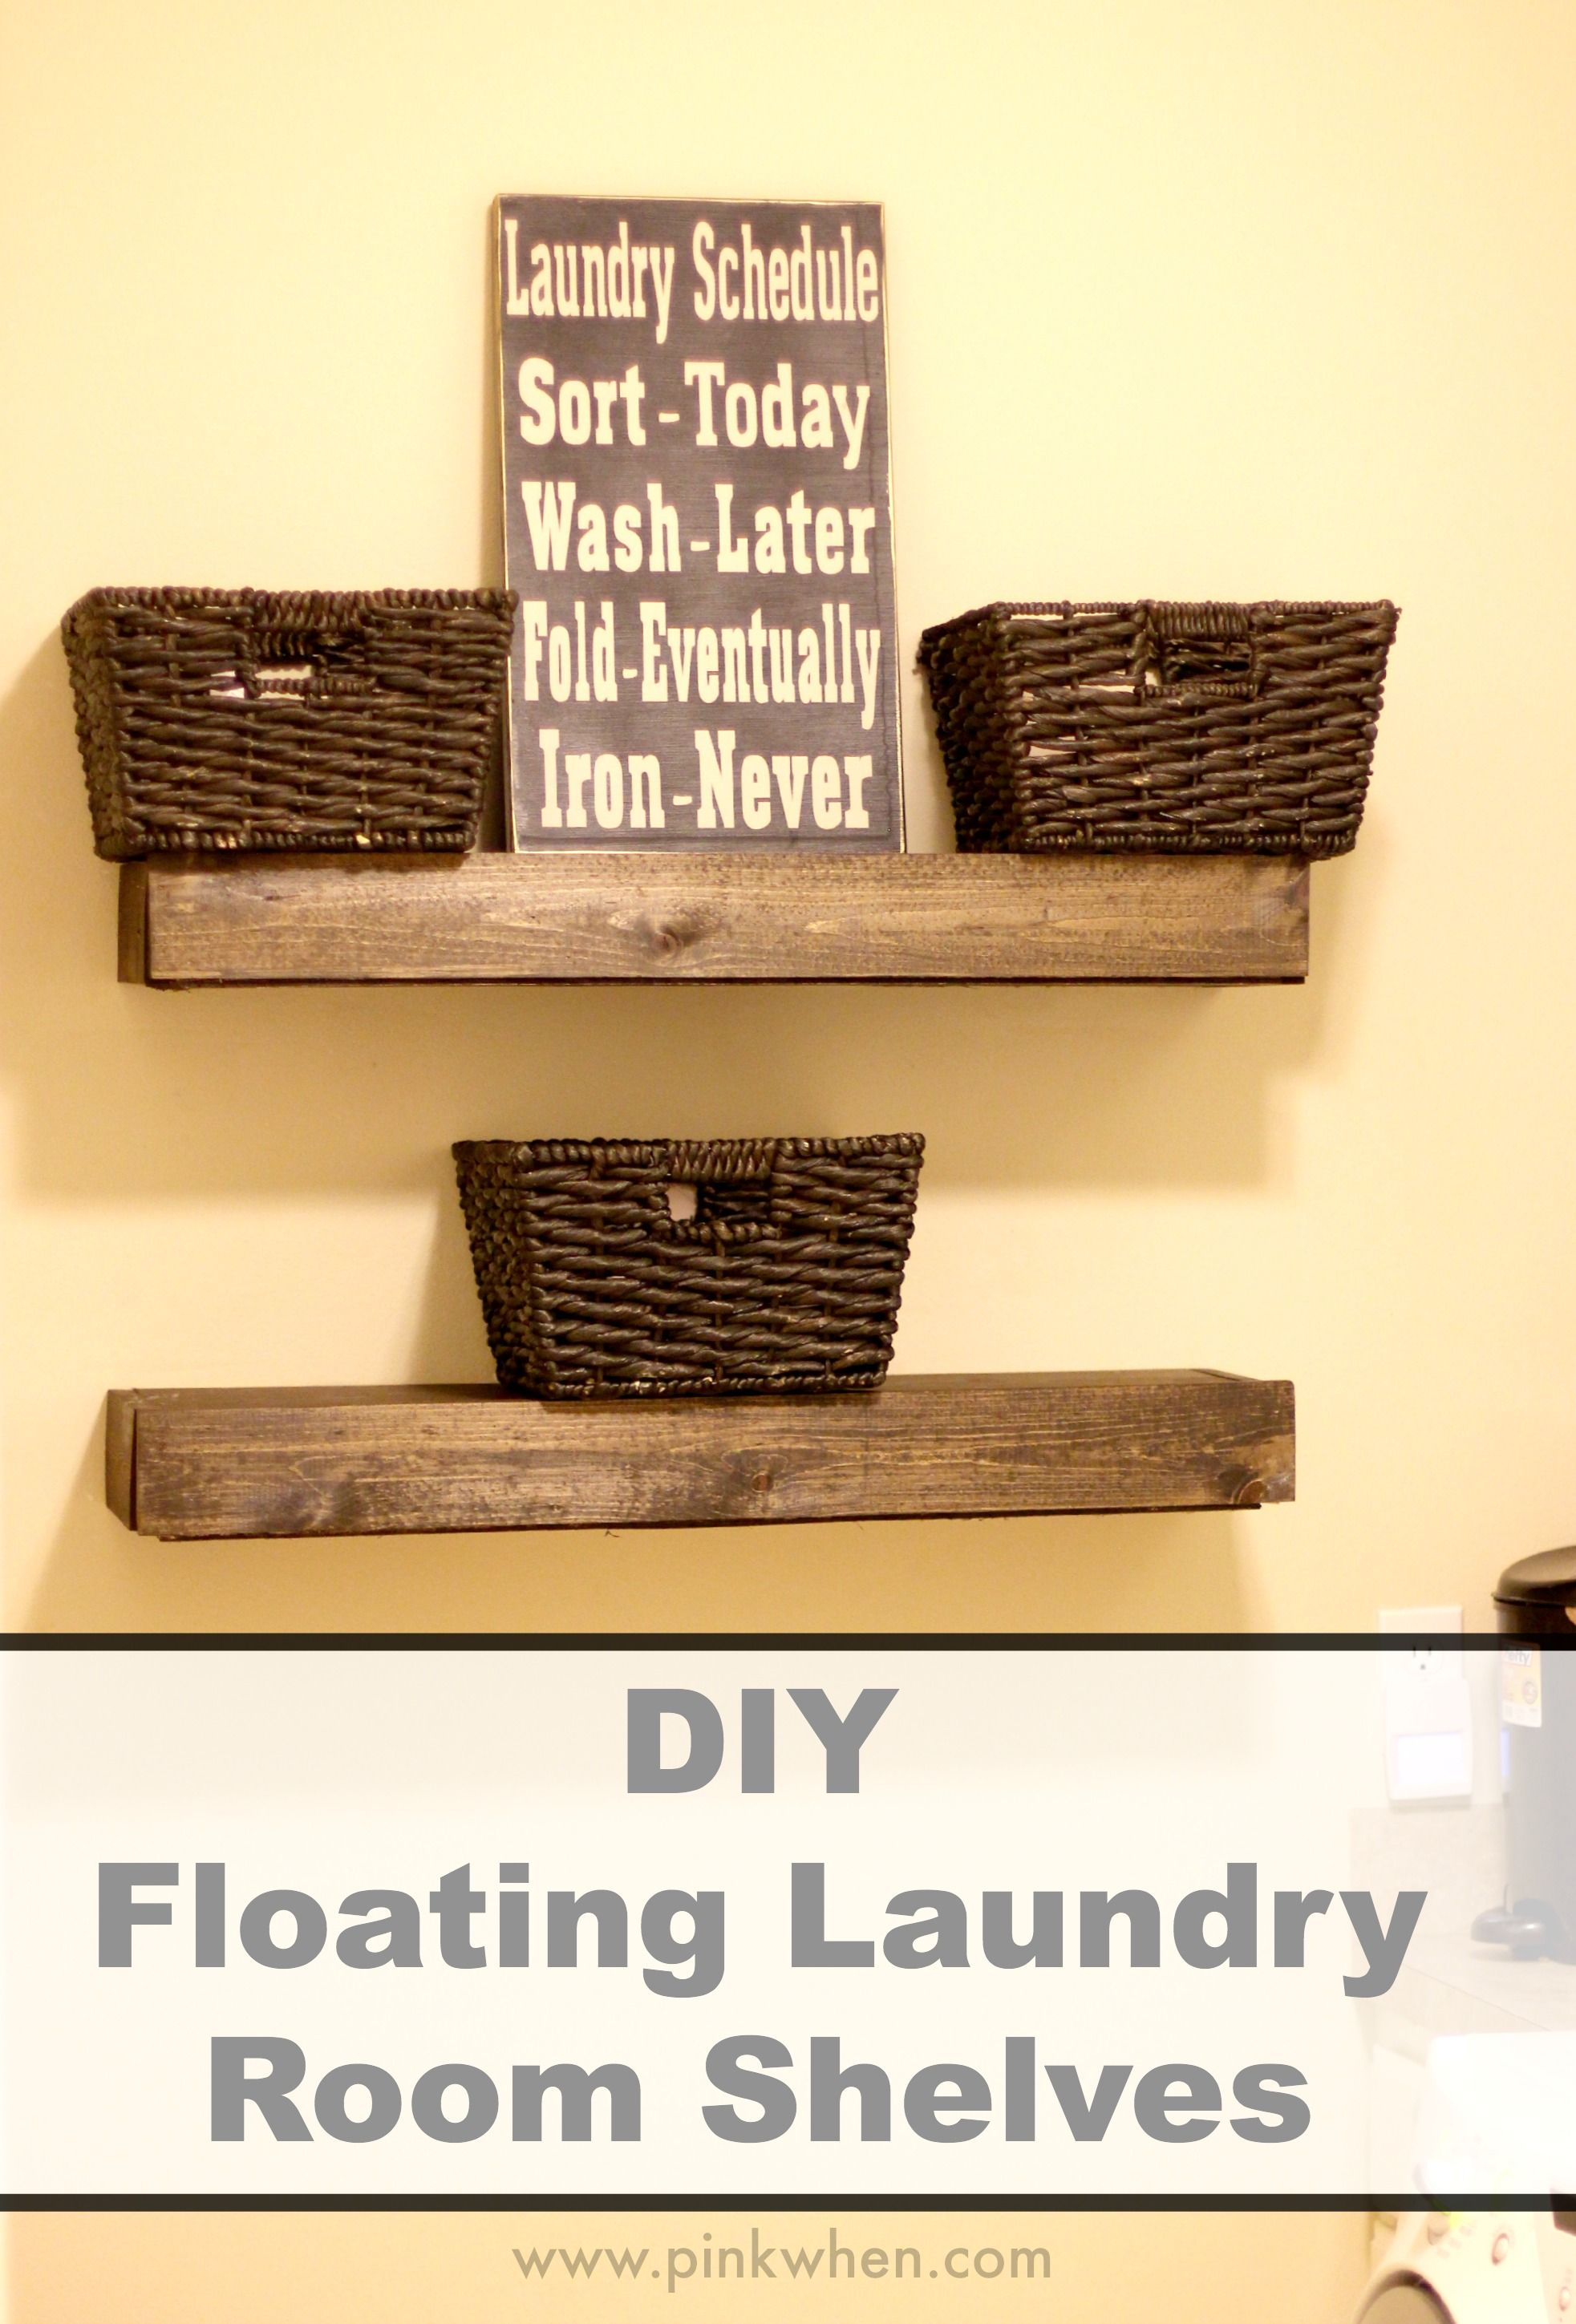 diy floating laundry room shelves home decor ideas poor very small space when you have family through lot needless say there are always and kitchen organization solutions bar